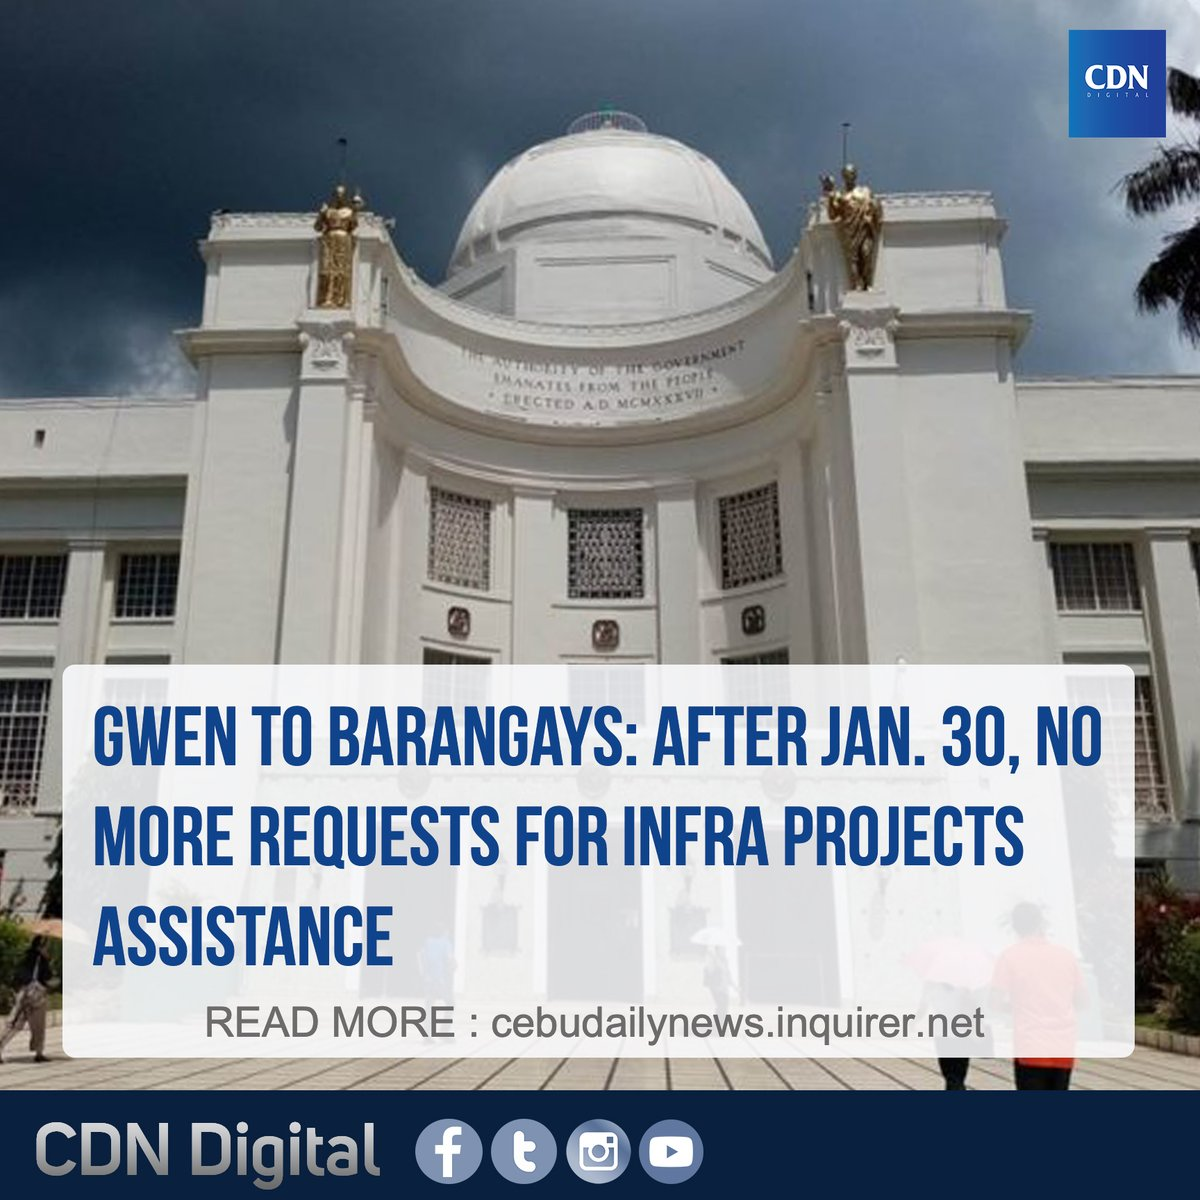 #CDNTopStories: During their assembly, barangays officials were told to submit resolutions approved by their respective barangay councils to formally make a request for assistance from the Capitol to the Provincial Planning and Development Office (PPDO) on or before January 30. pic.twitter.com/lYw11DycEk